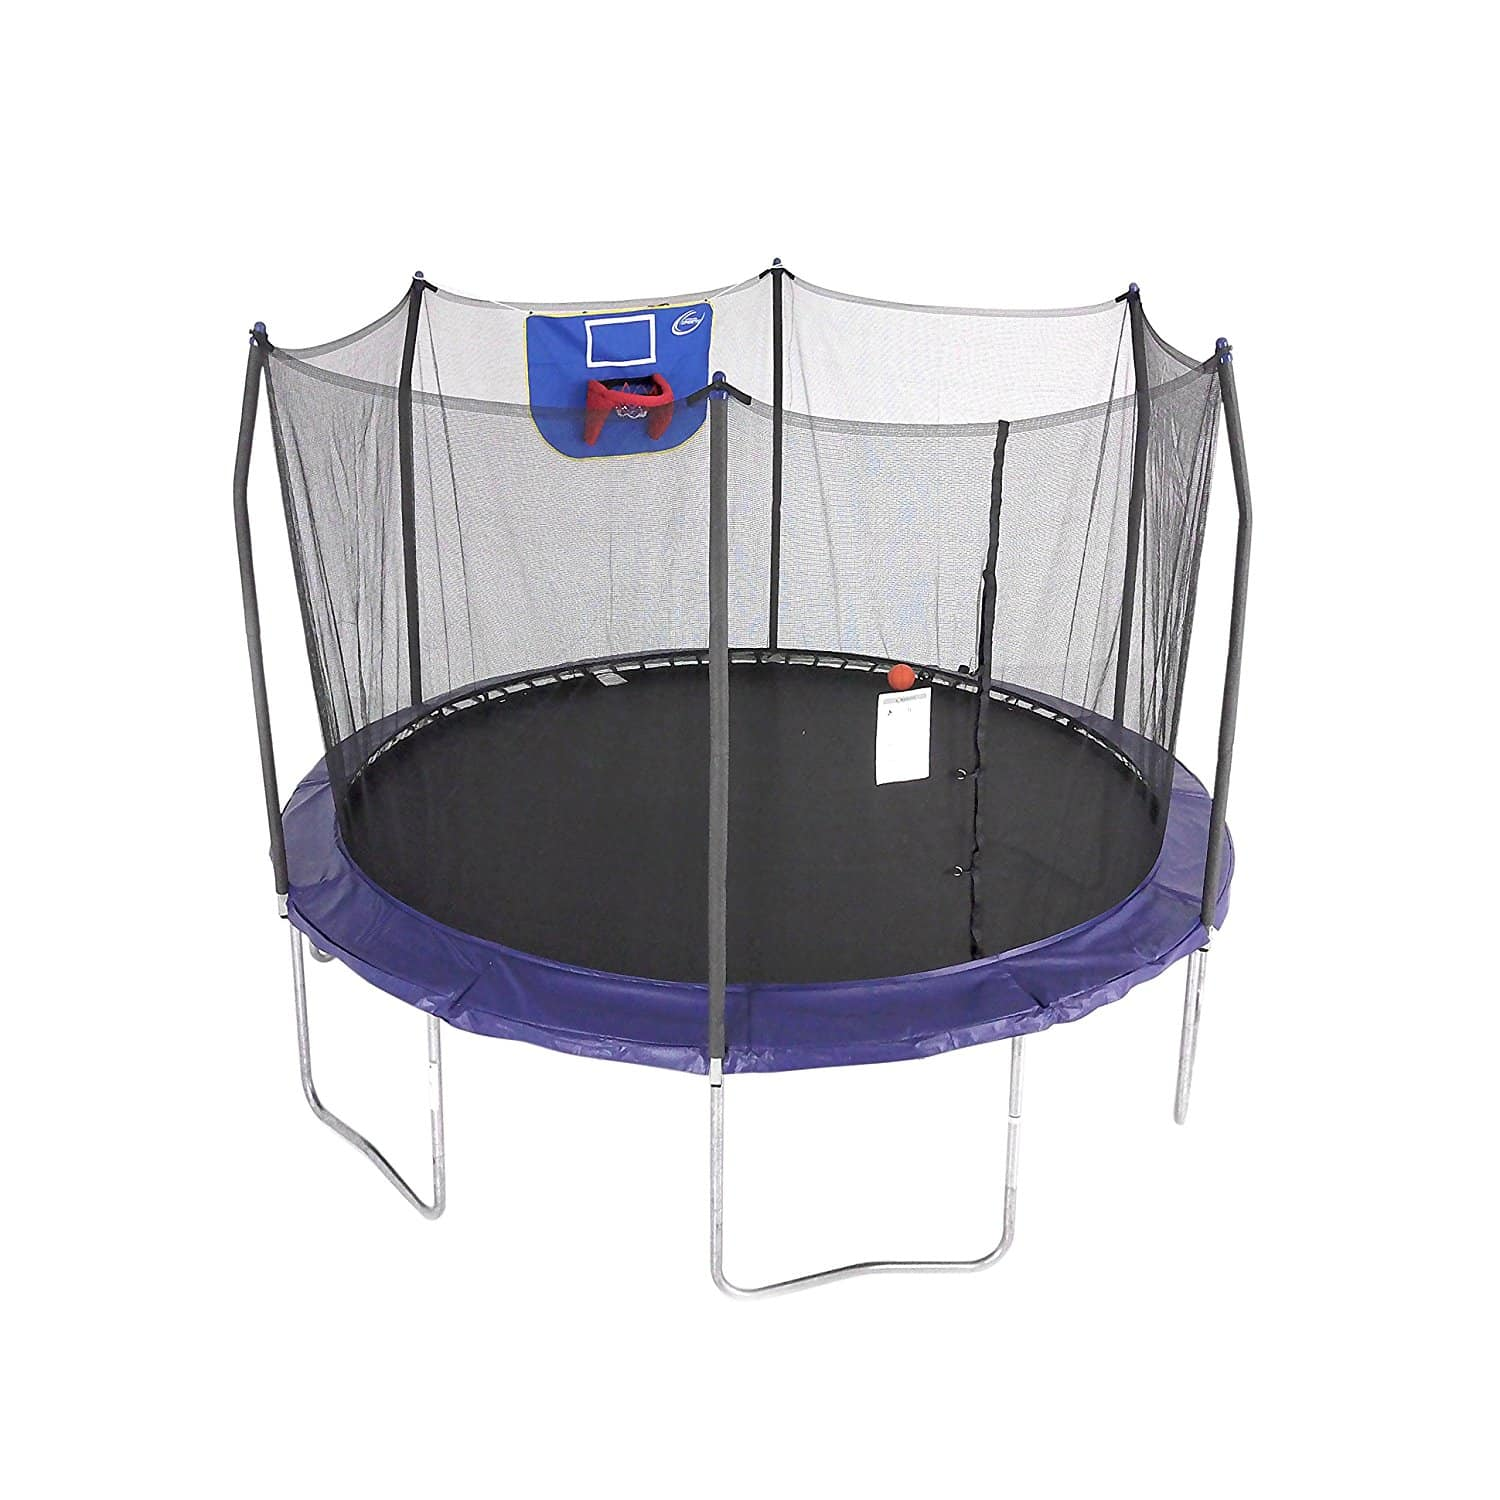 skywalker 12 trampoline